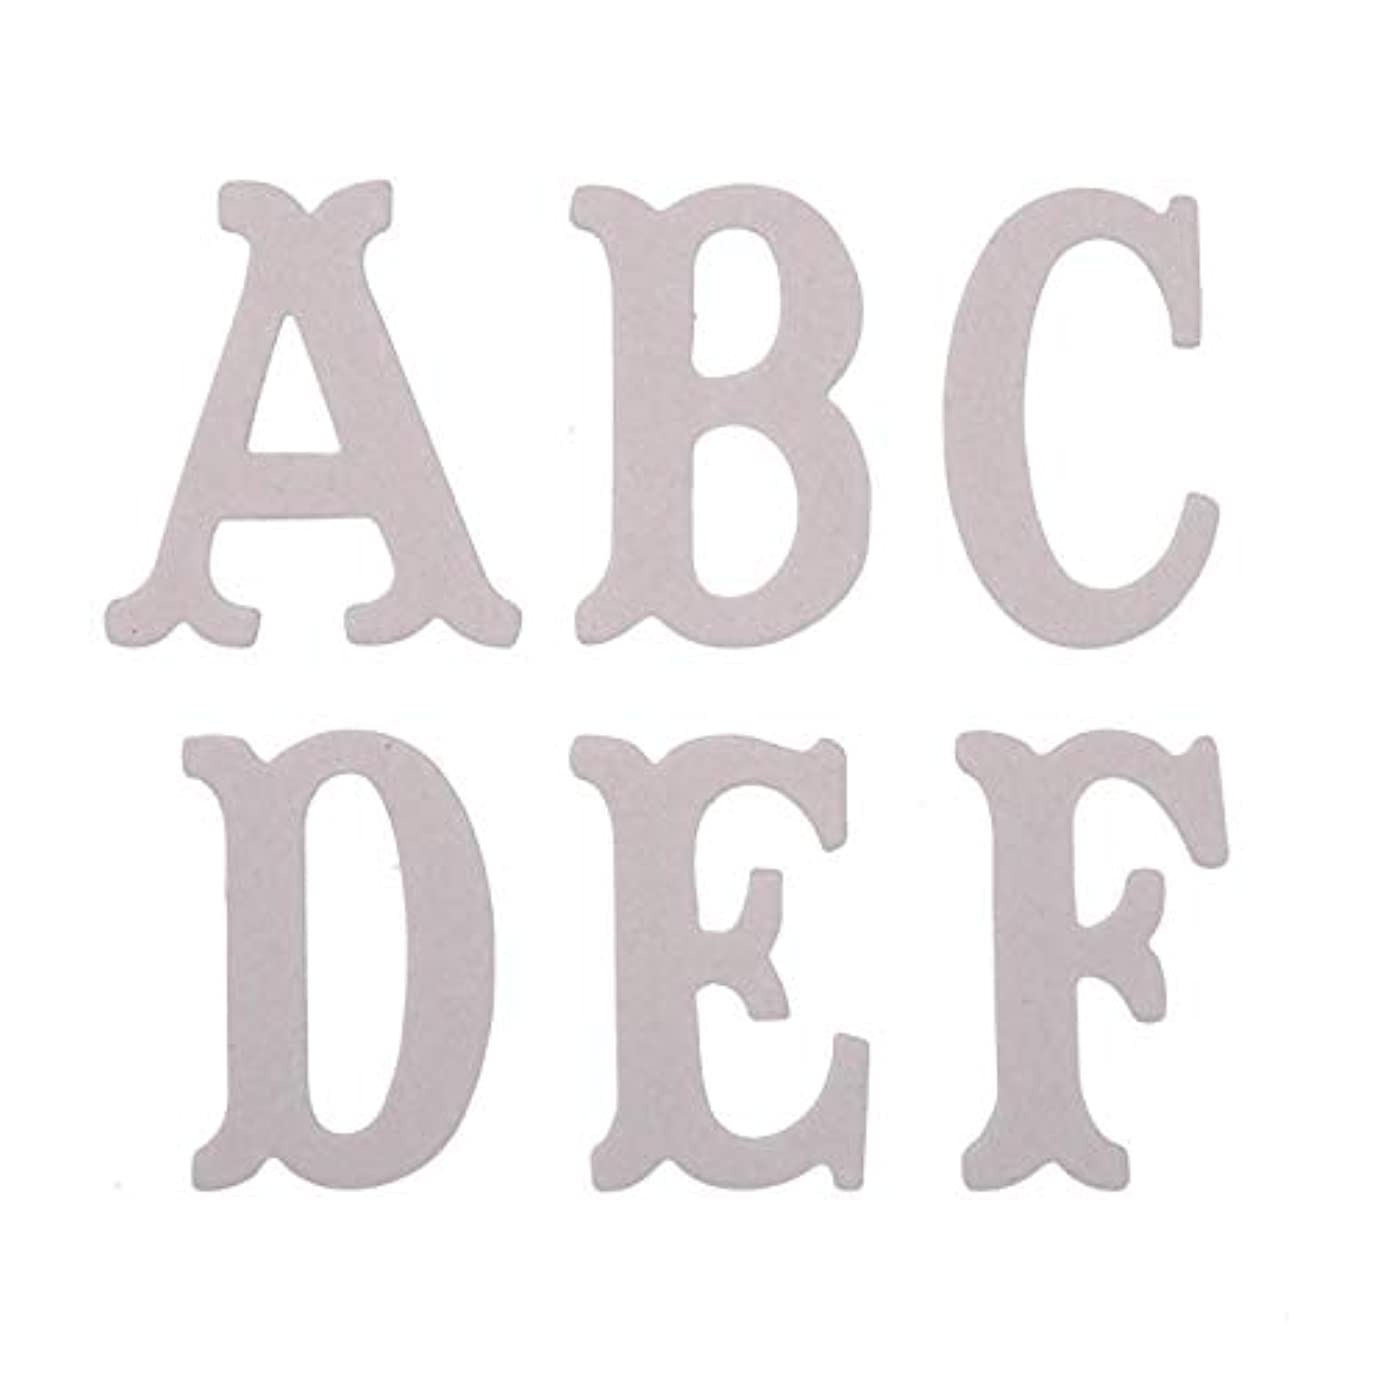 Bulk Buy: Darice DIY Crafts Chipboard Letters 3 inches 26 pieces (6-Pack) 1208-72